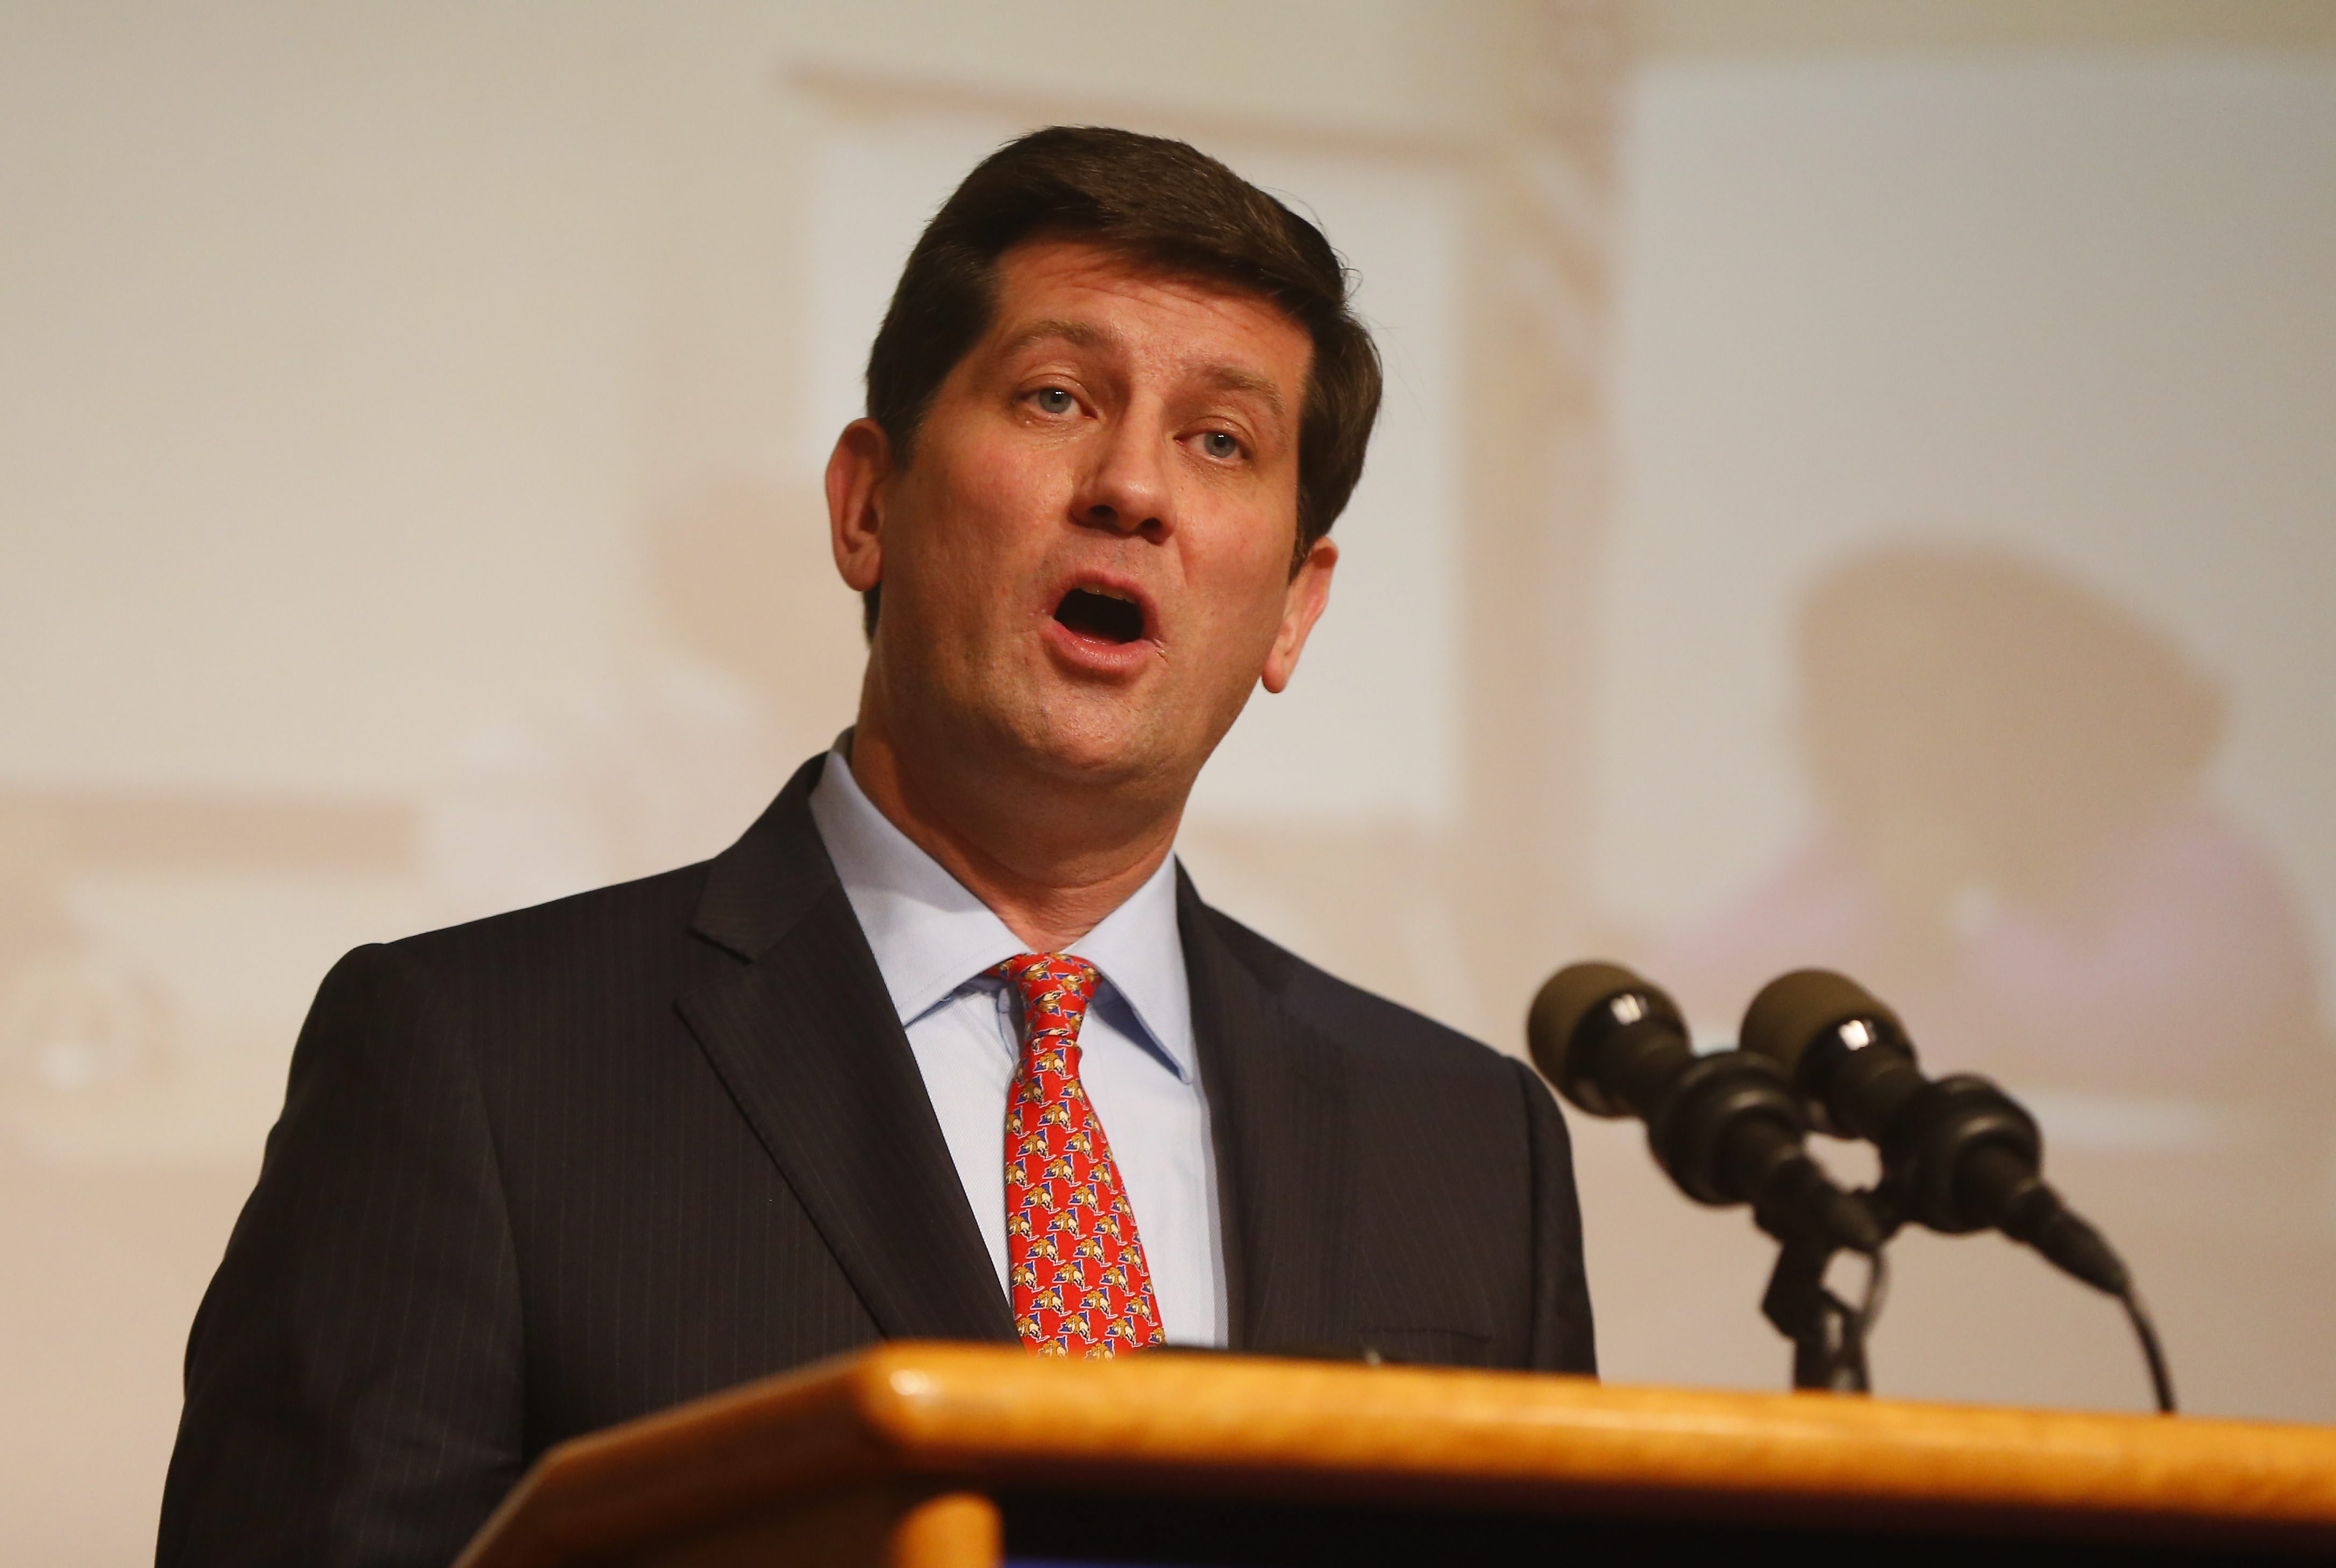 Erie County Executive Mark Poloncarz gives the State of the County address at the Buffalo and Erie County Historical Society Thursday, March 10, 2016.   (Mark Mulville/Buffalo News)